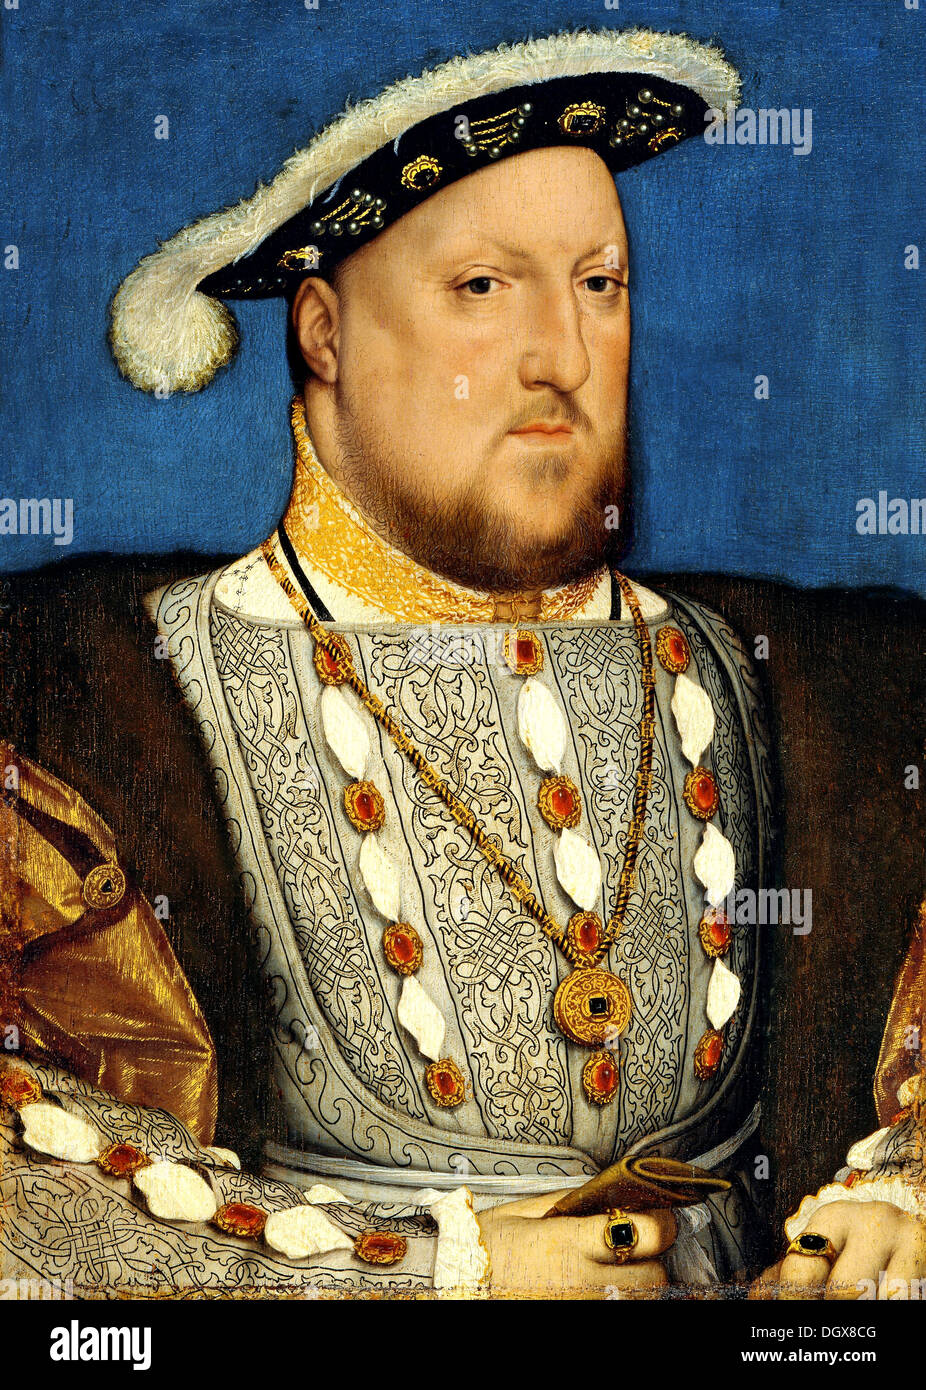 Portrait of Henry VIII, king of England - by Hans Holbein the Younger, 1540 - Stock Image